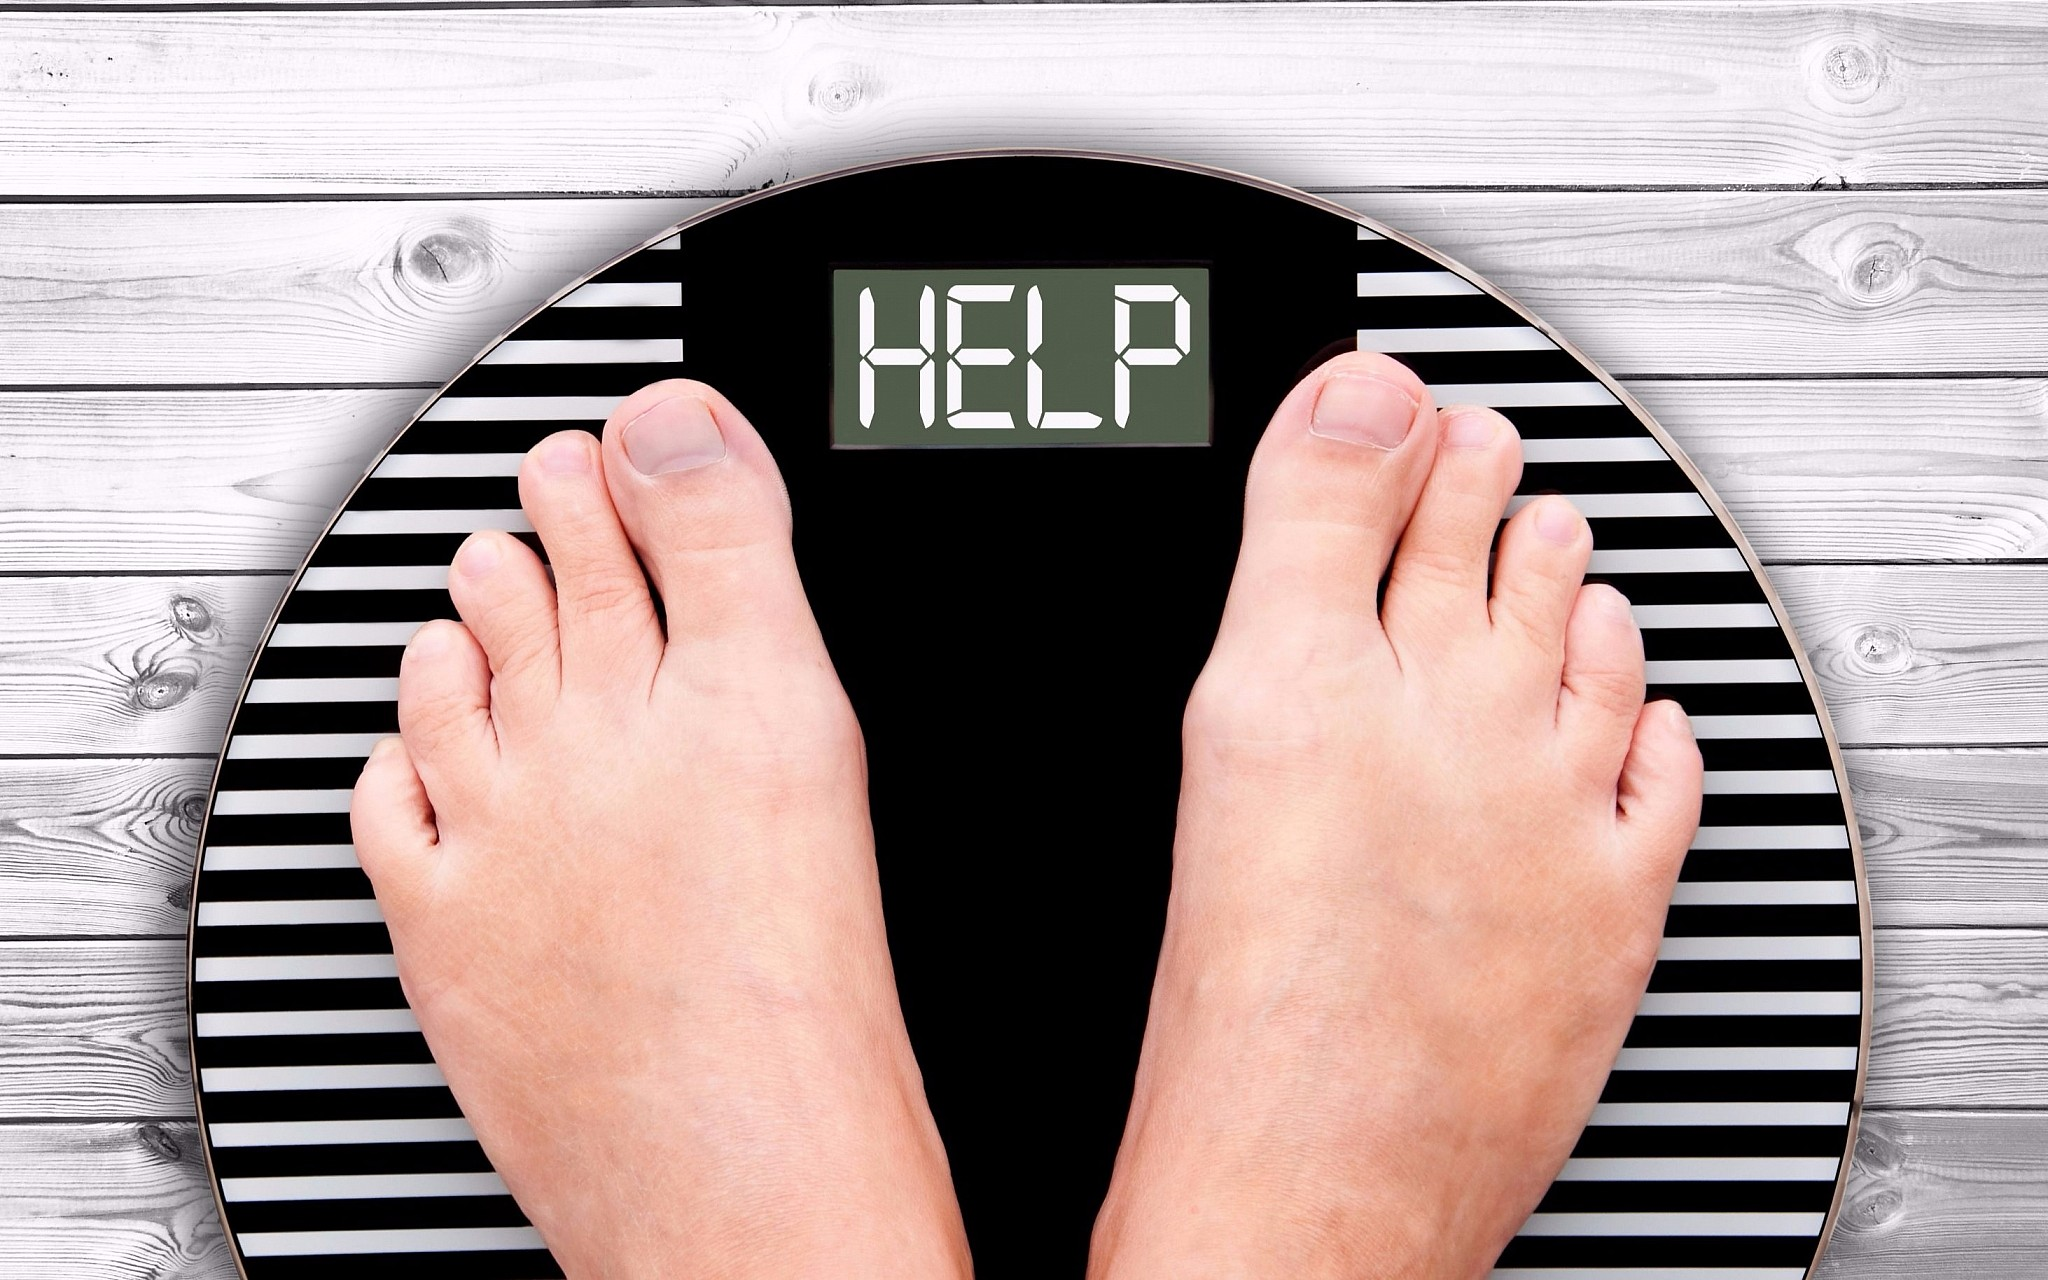 Israeli 'fat-melting' injection claims to help battle obesity | The ...